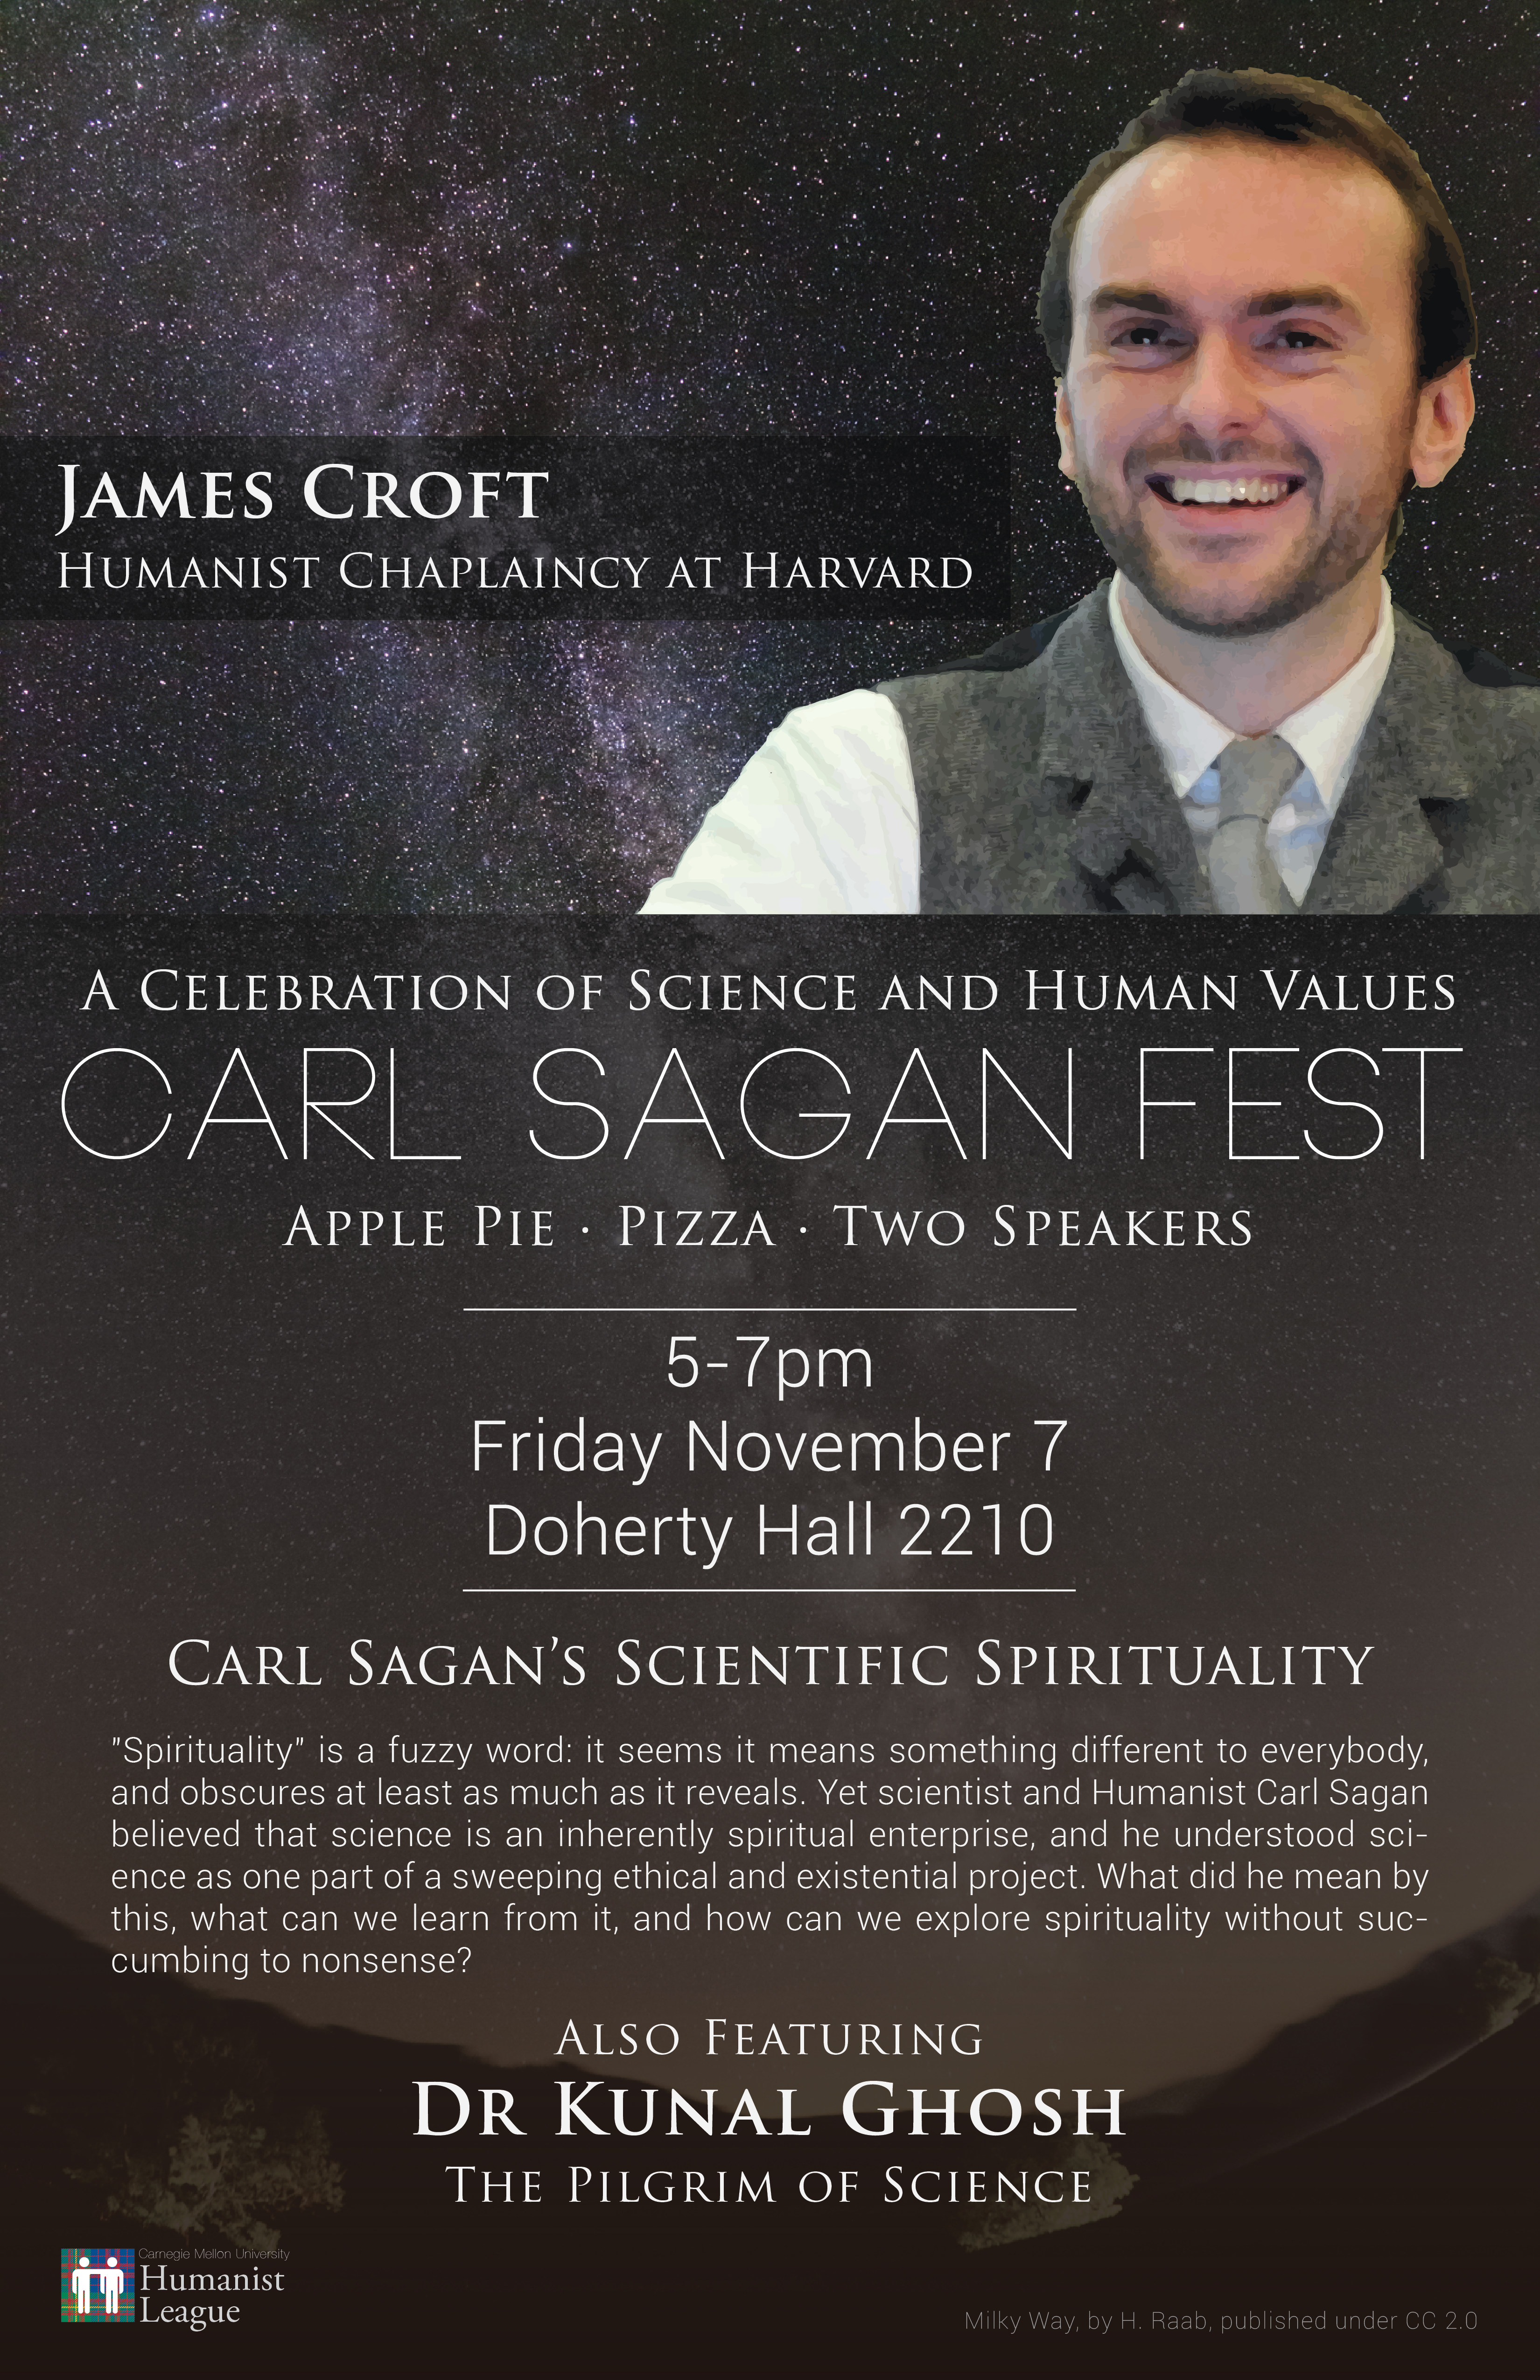 Carl Sagan Fest – A Celebration of Science and Human Values Poster